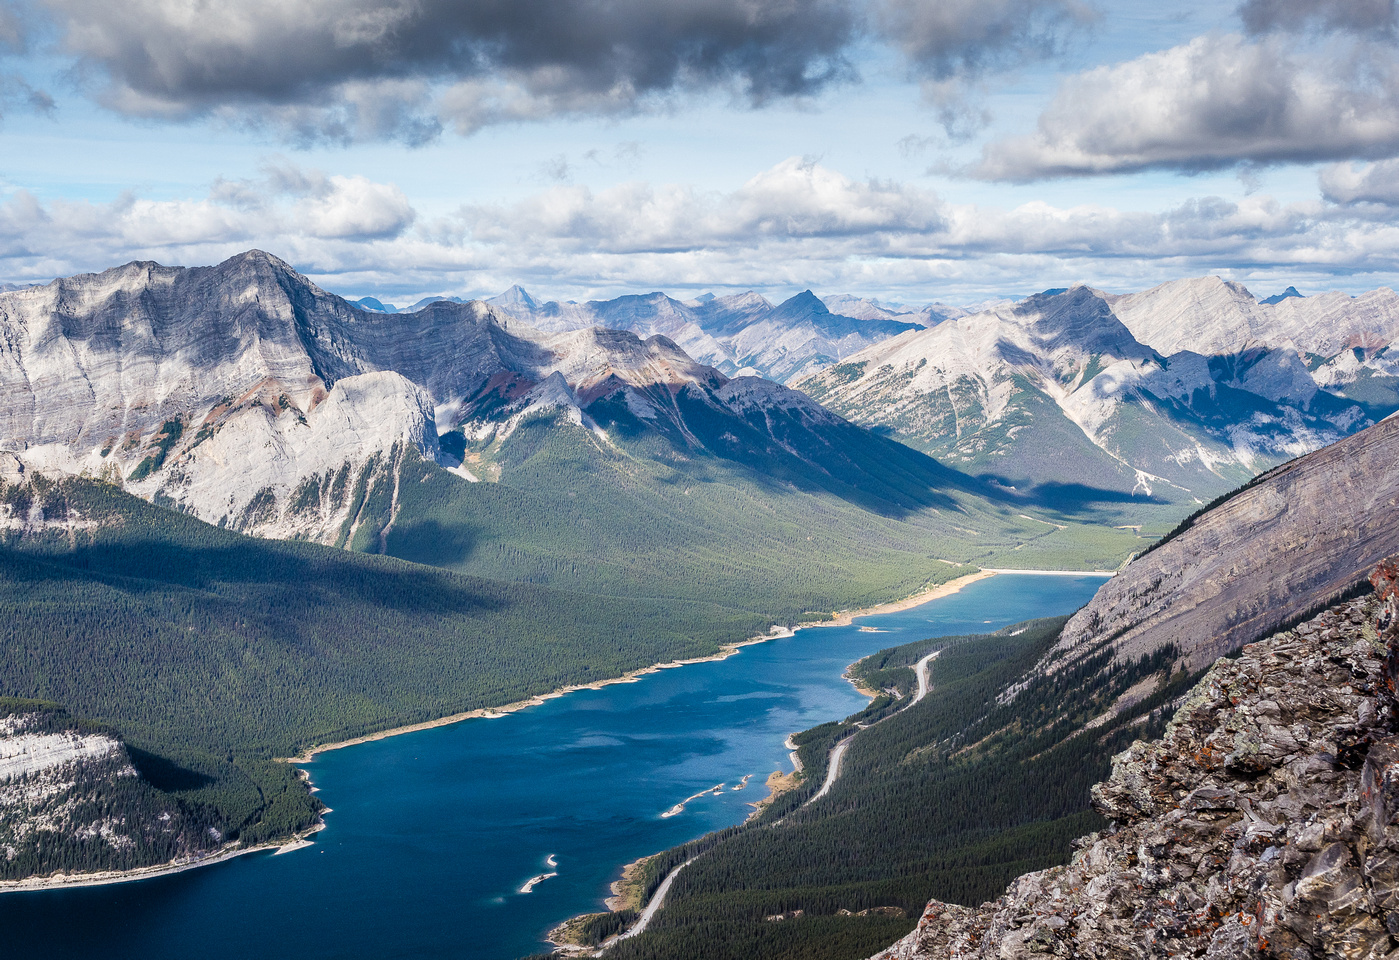 Looking northwest over Spray Lakes towards Goat View.